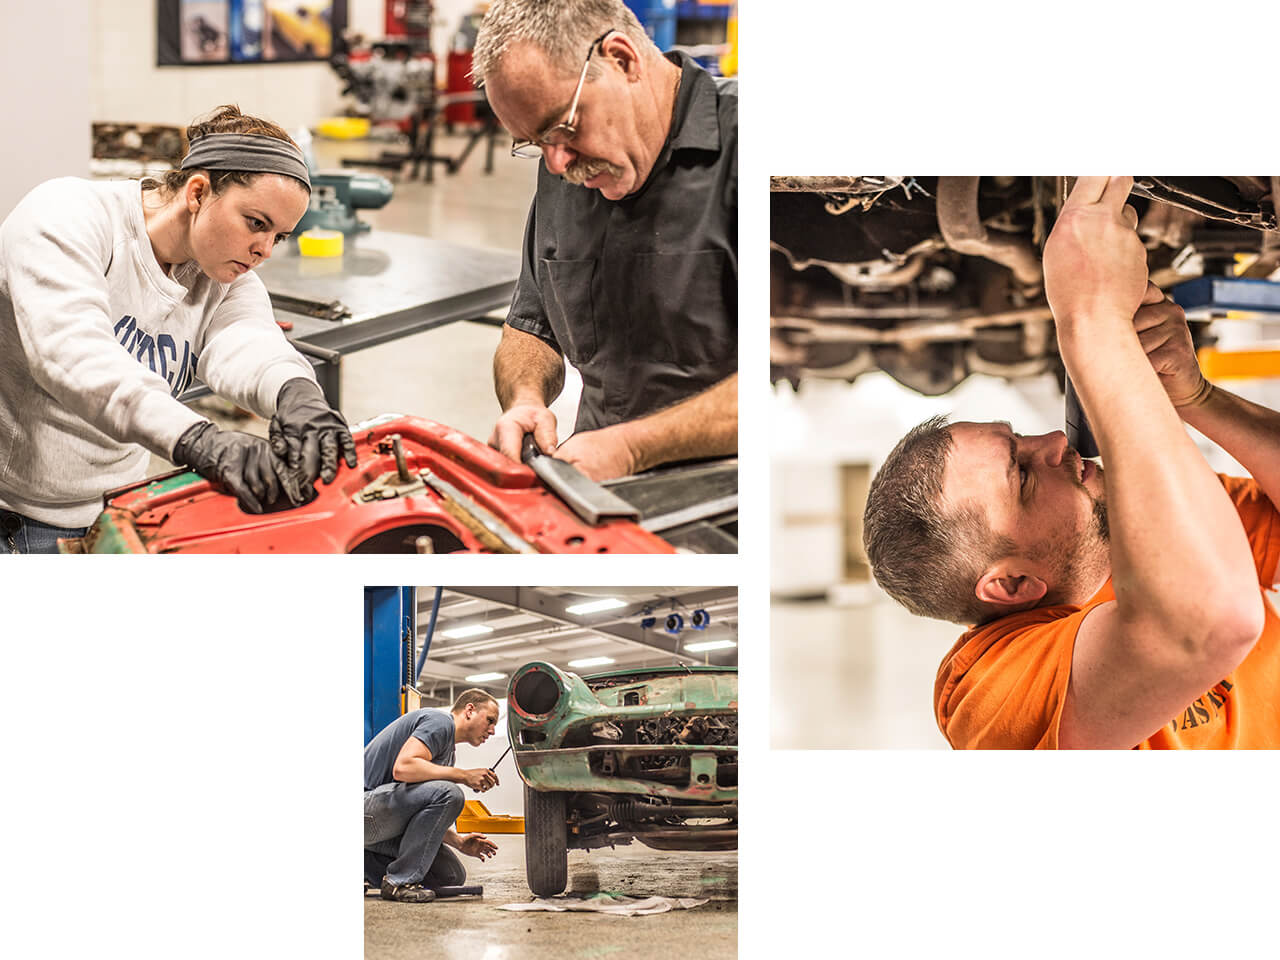 A group of men and women collectively work on restoring a collector vehicle.